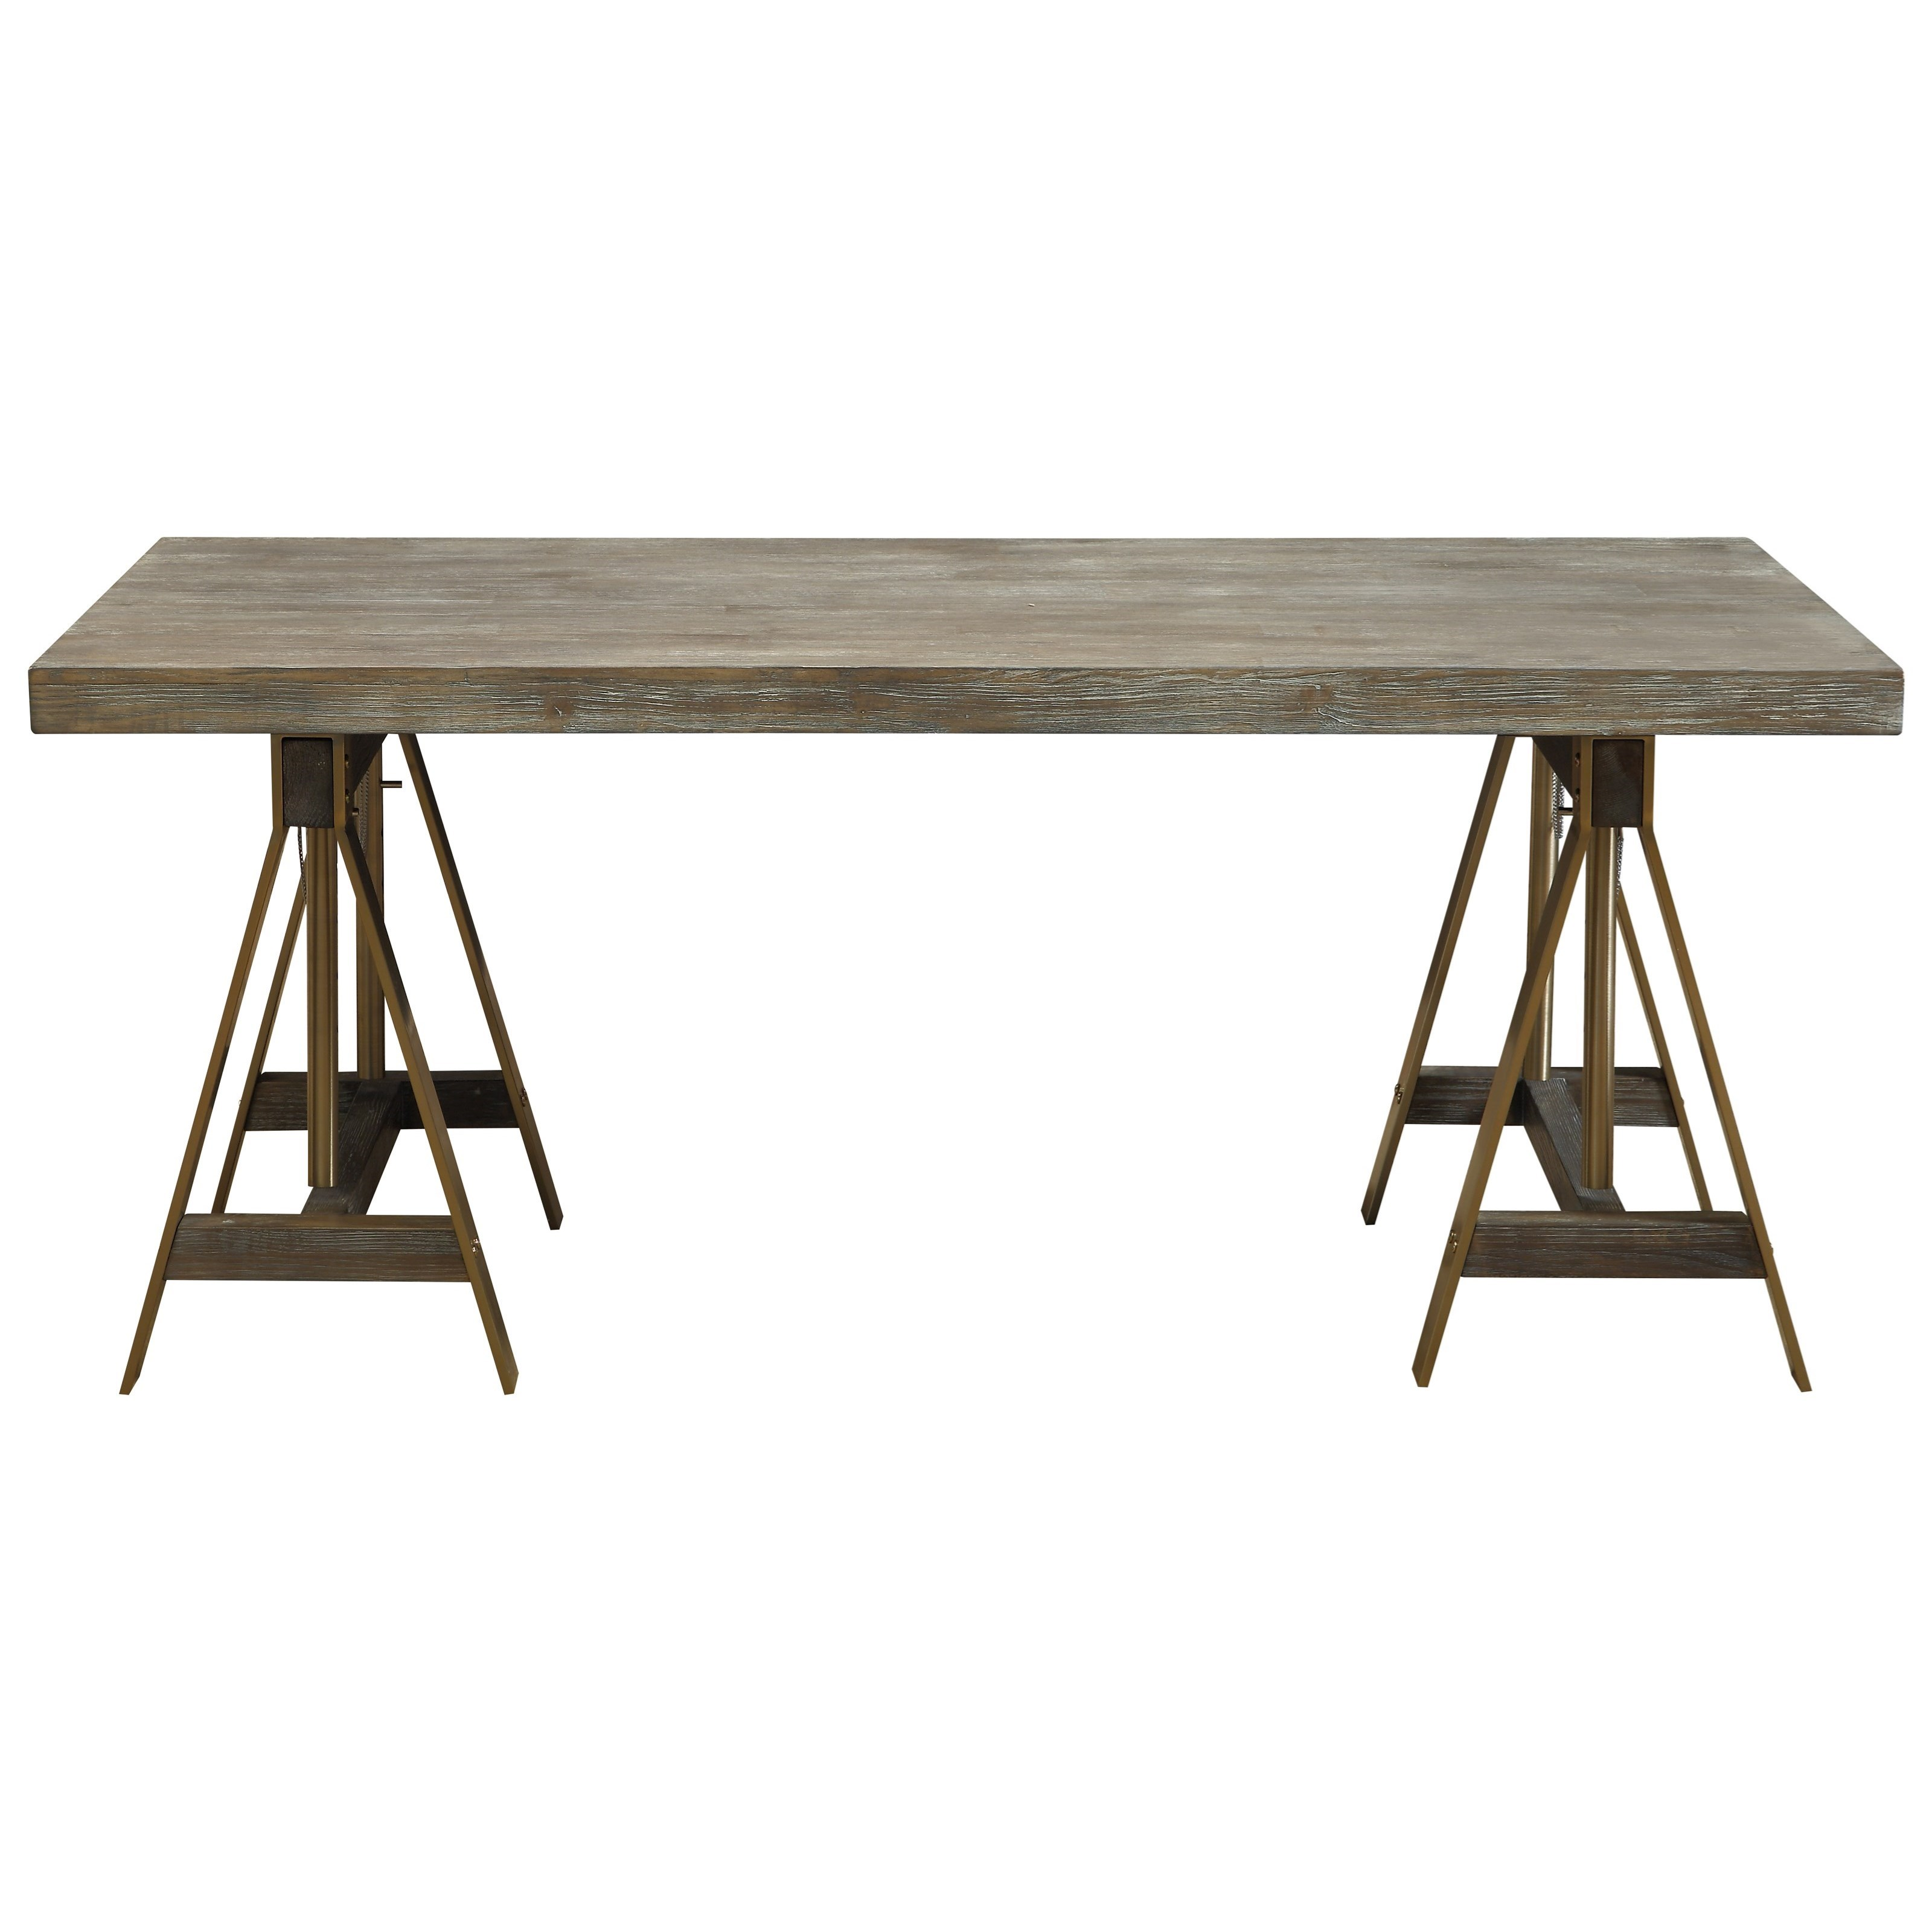 Biscayne Adjustable Dining Table / Desk by C2C at Walker's Furniture